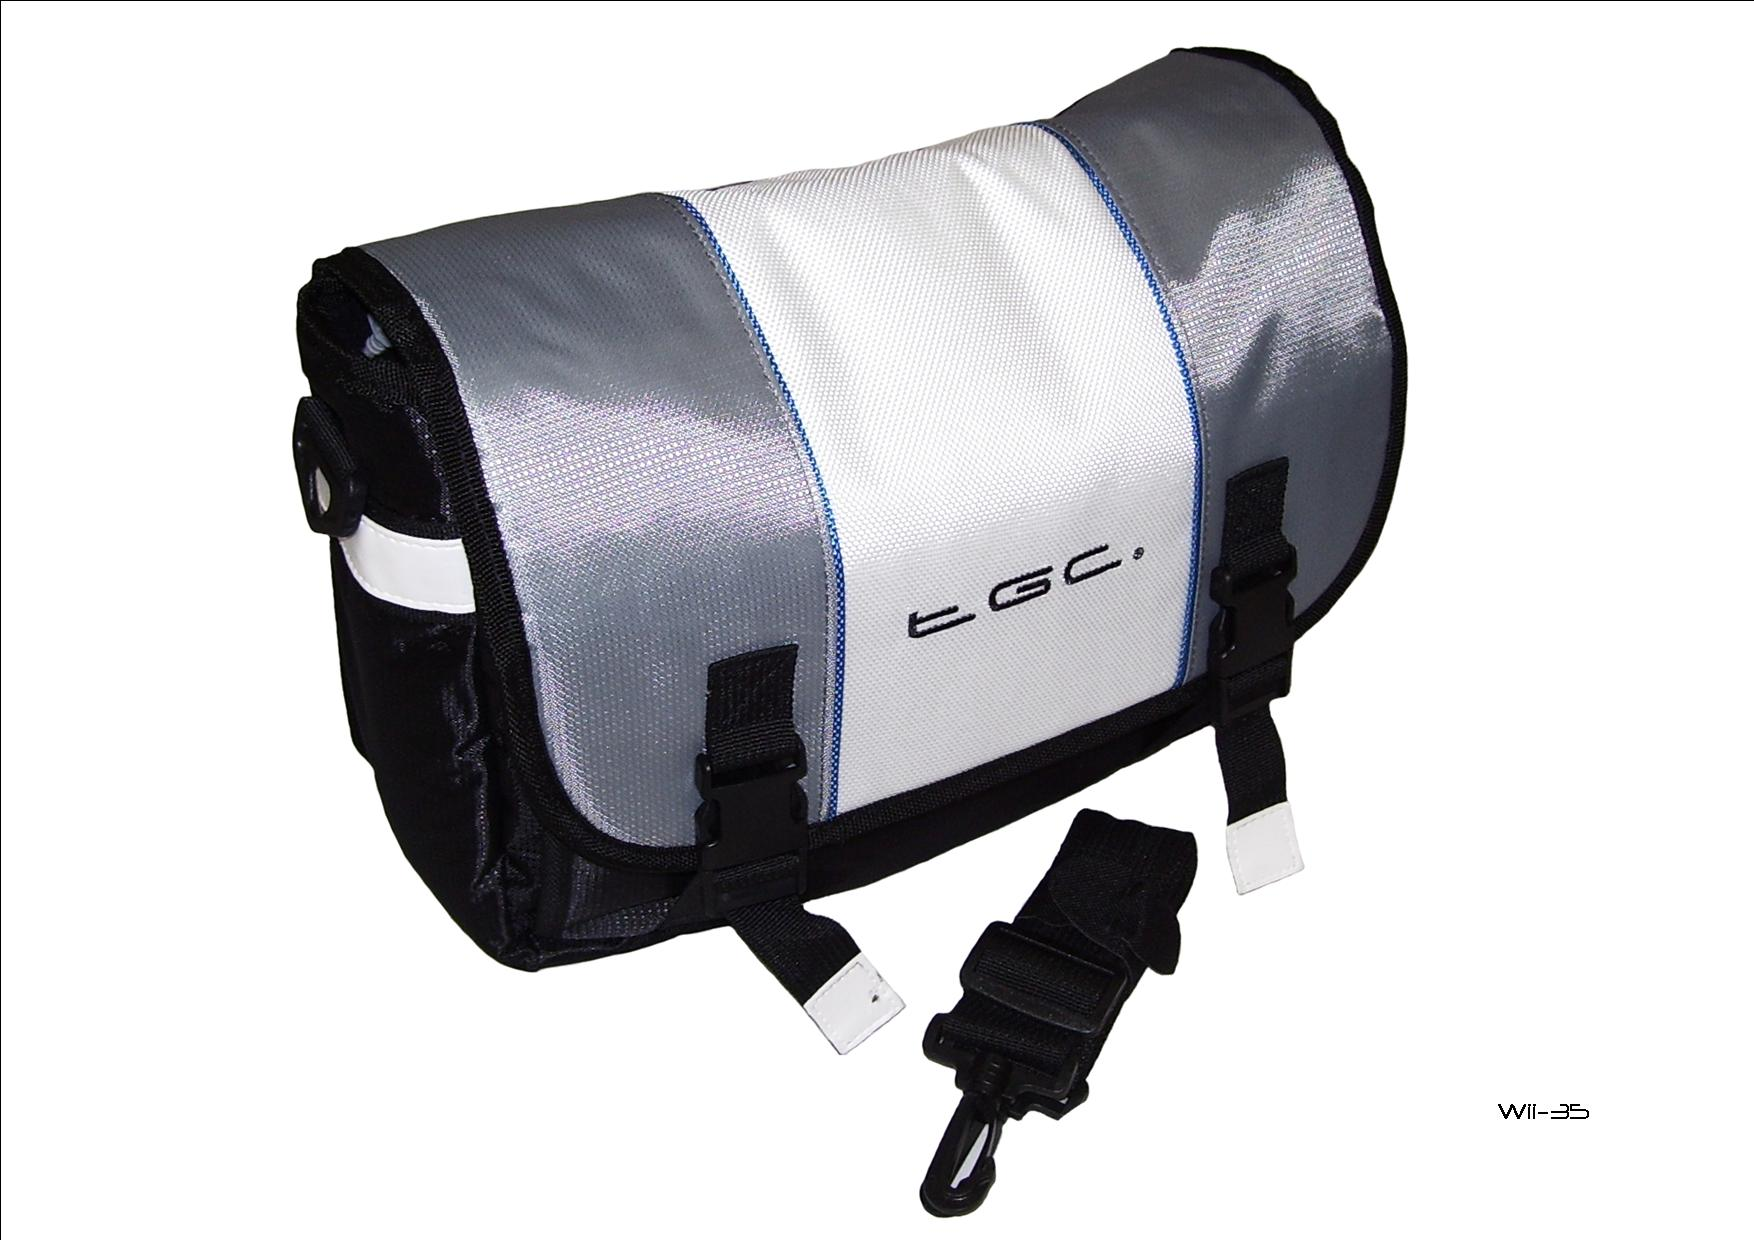 Product Photo/New Messenger Style TGC Padded Carry Case Bag for Portable DVD Players UK Seller/Click to view.